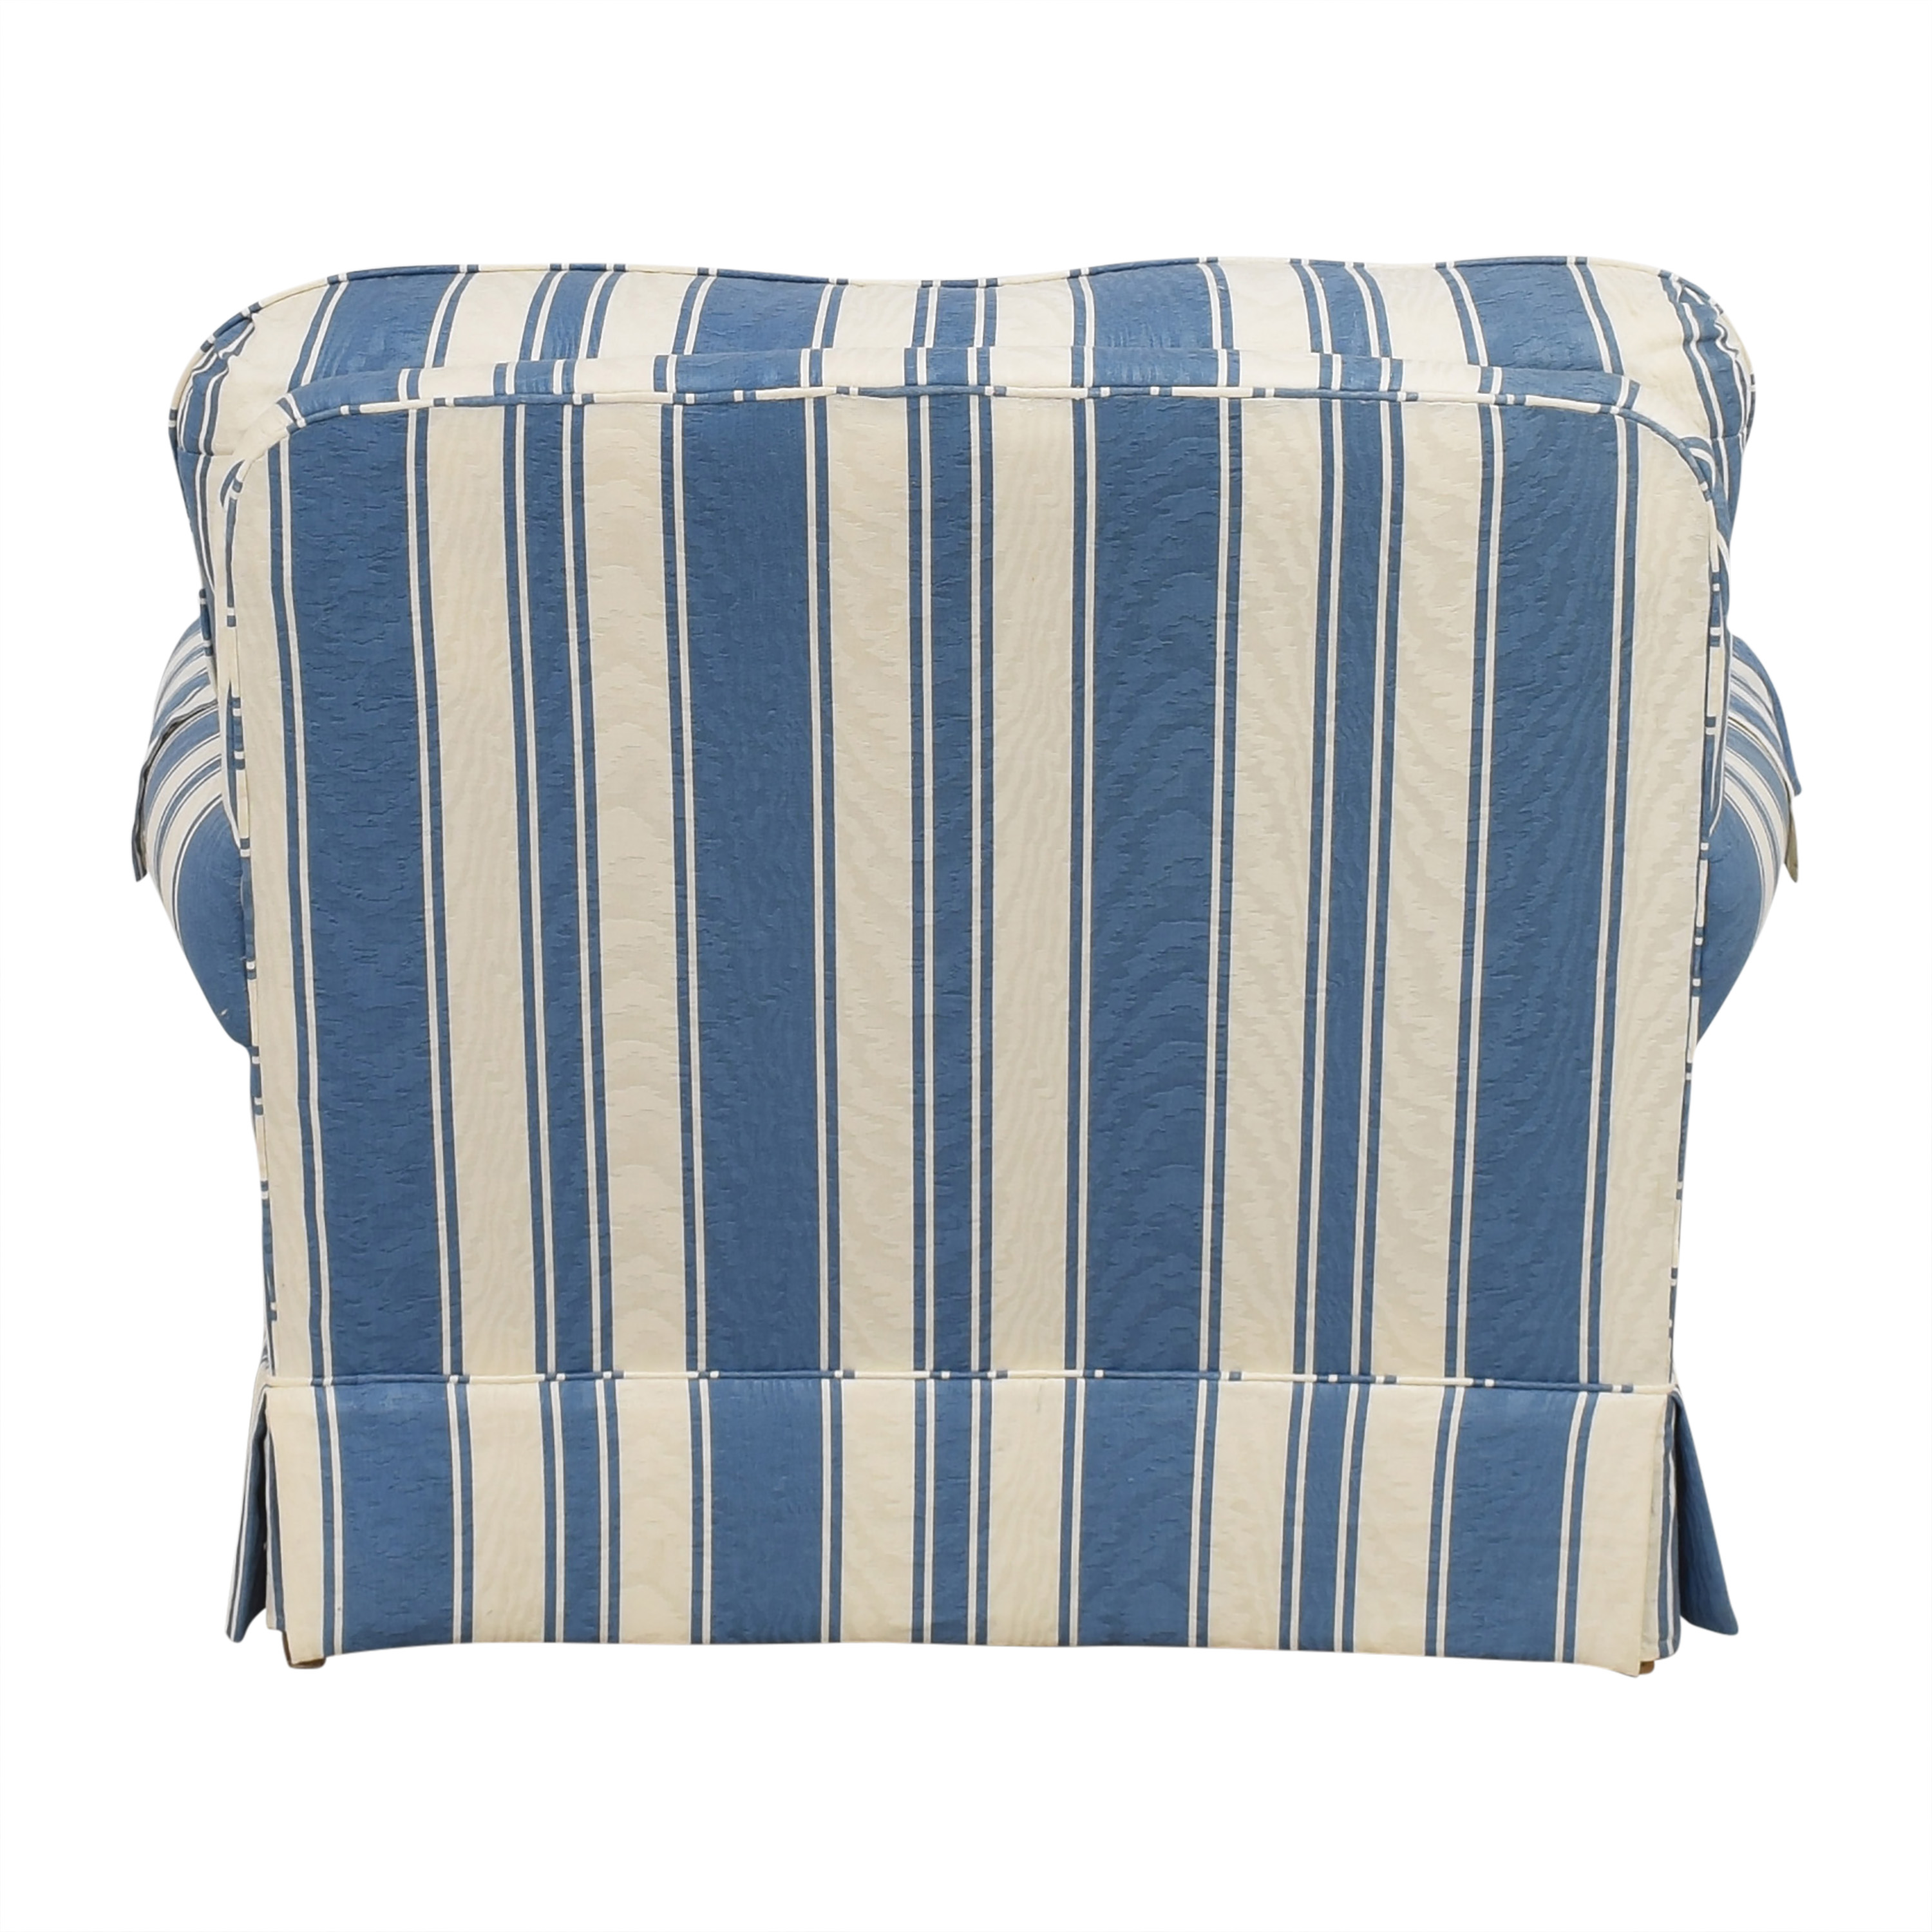 Clayton Marcus Striped Accent Chair sale